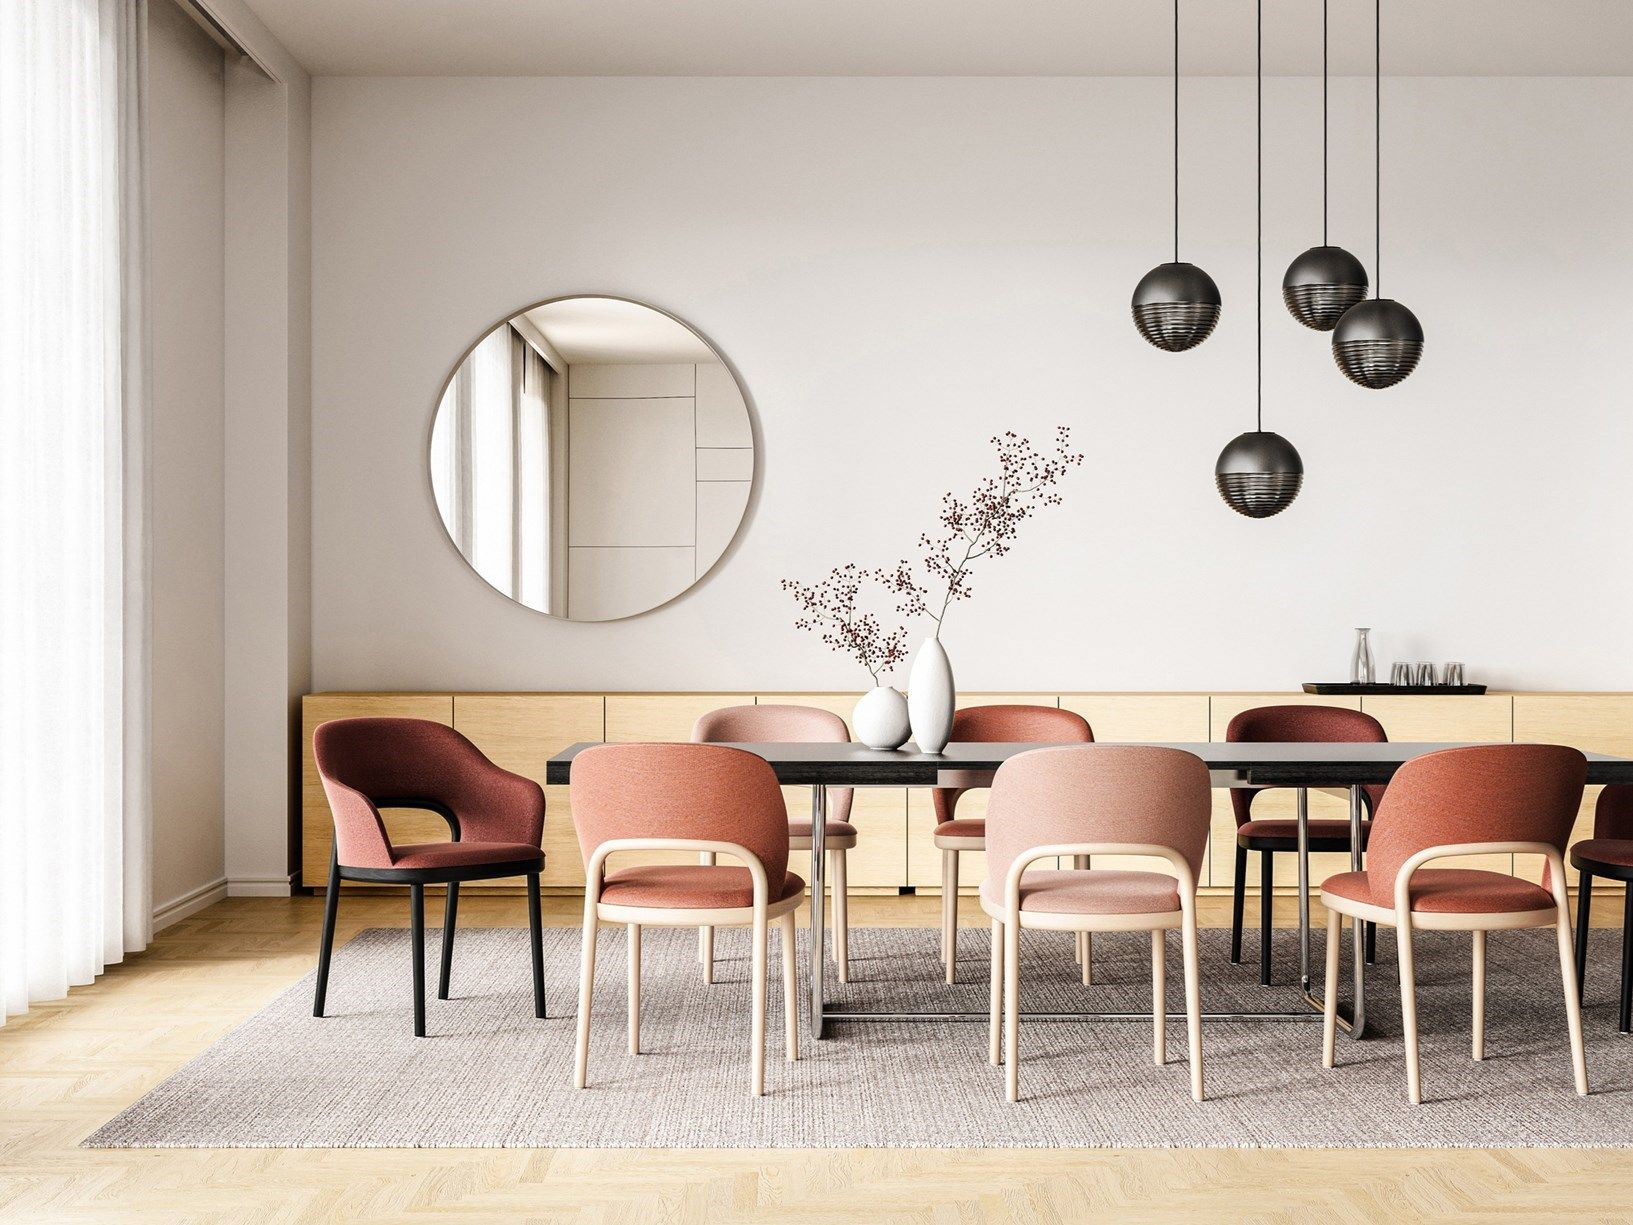 The new Upholstered Chair 10 by Marco Dessí for Thonet